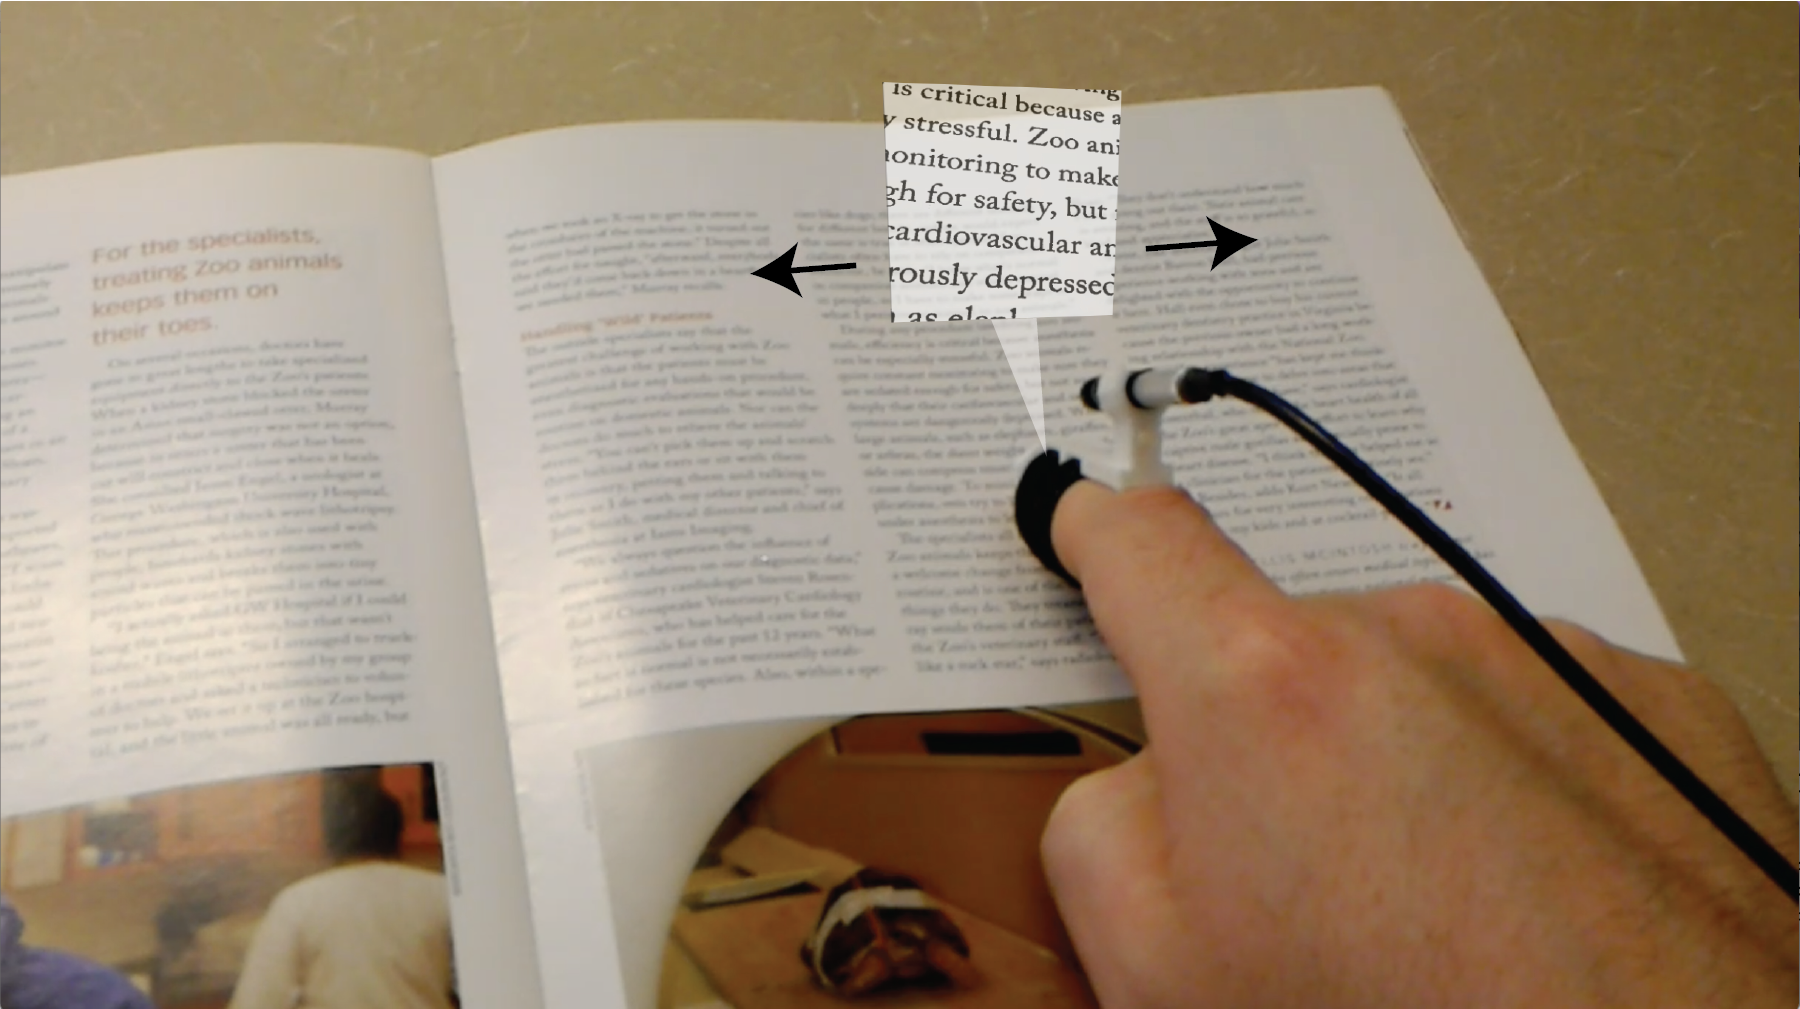 Augumented reality magnification of a magazine document using a finger-mounted camera